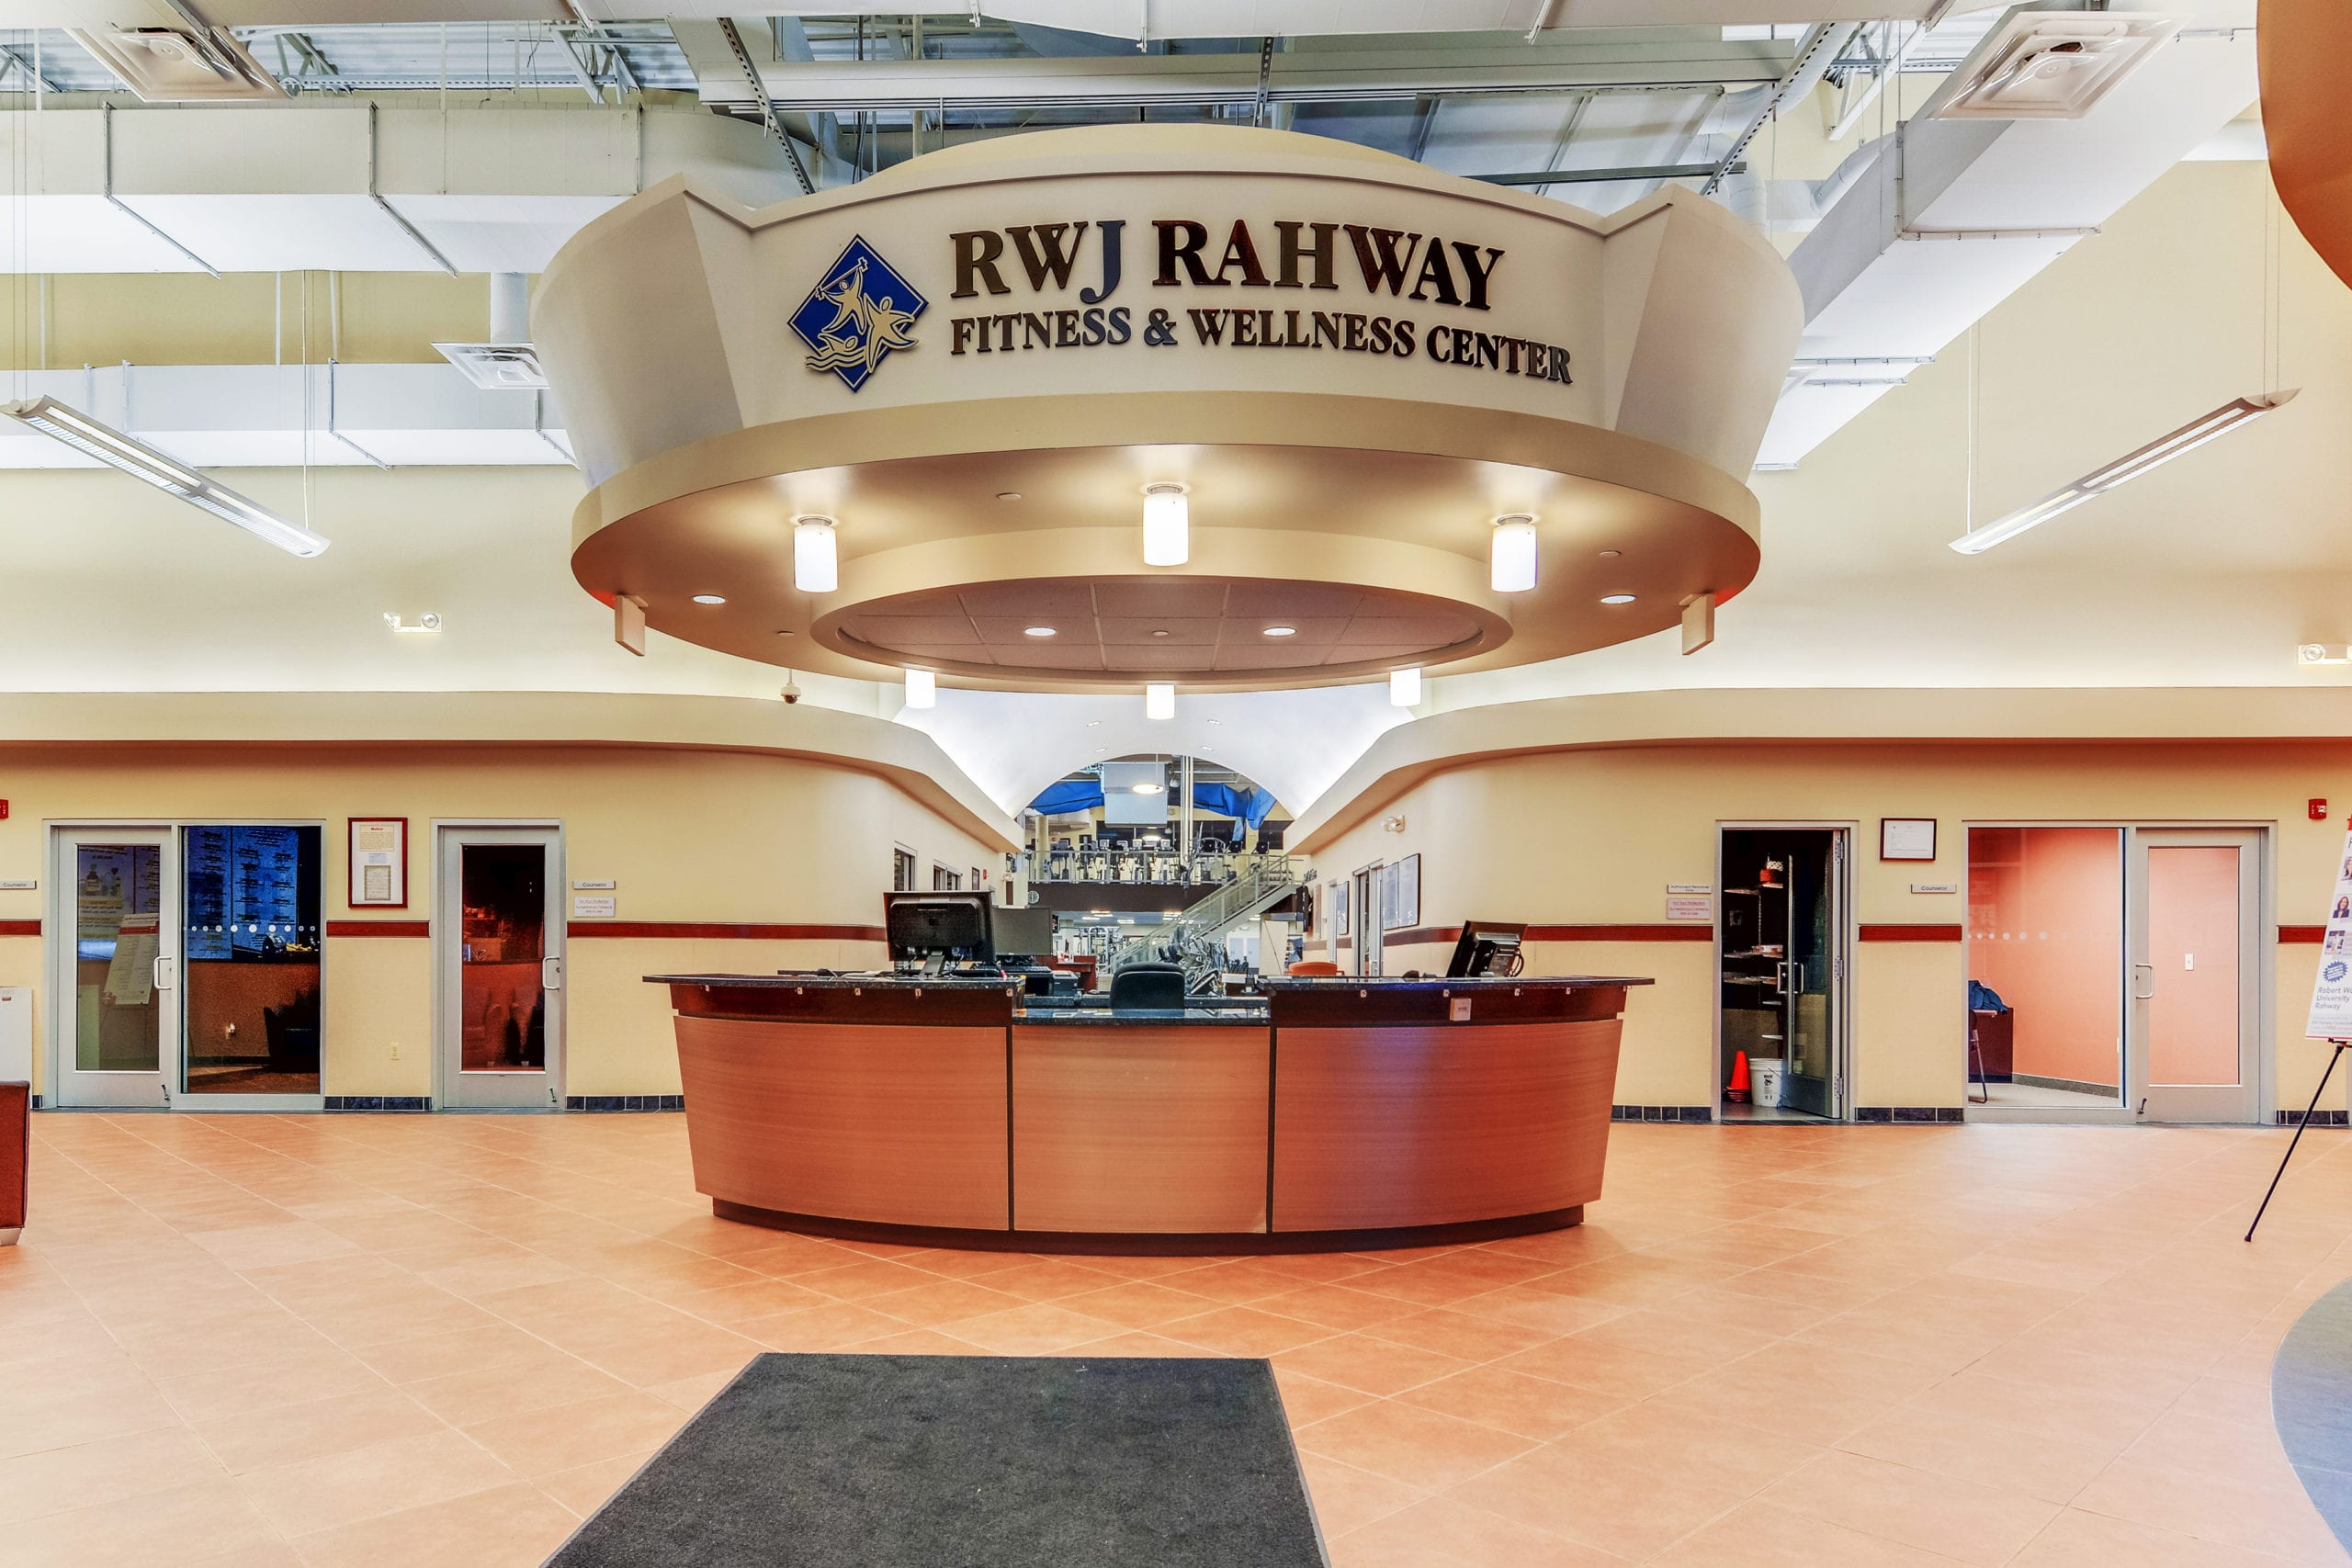 Schedule Tour - RWJ RAHWAY FITNESS & WELLNESS